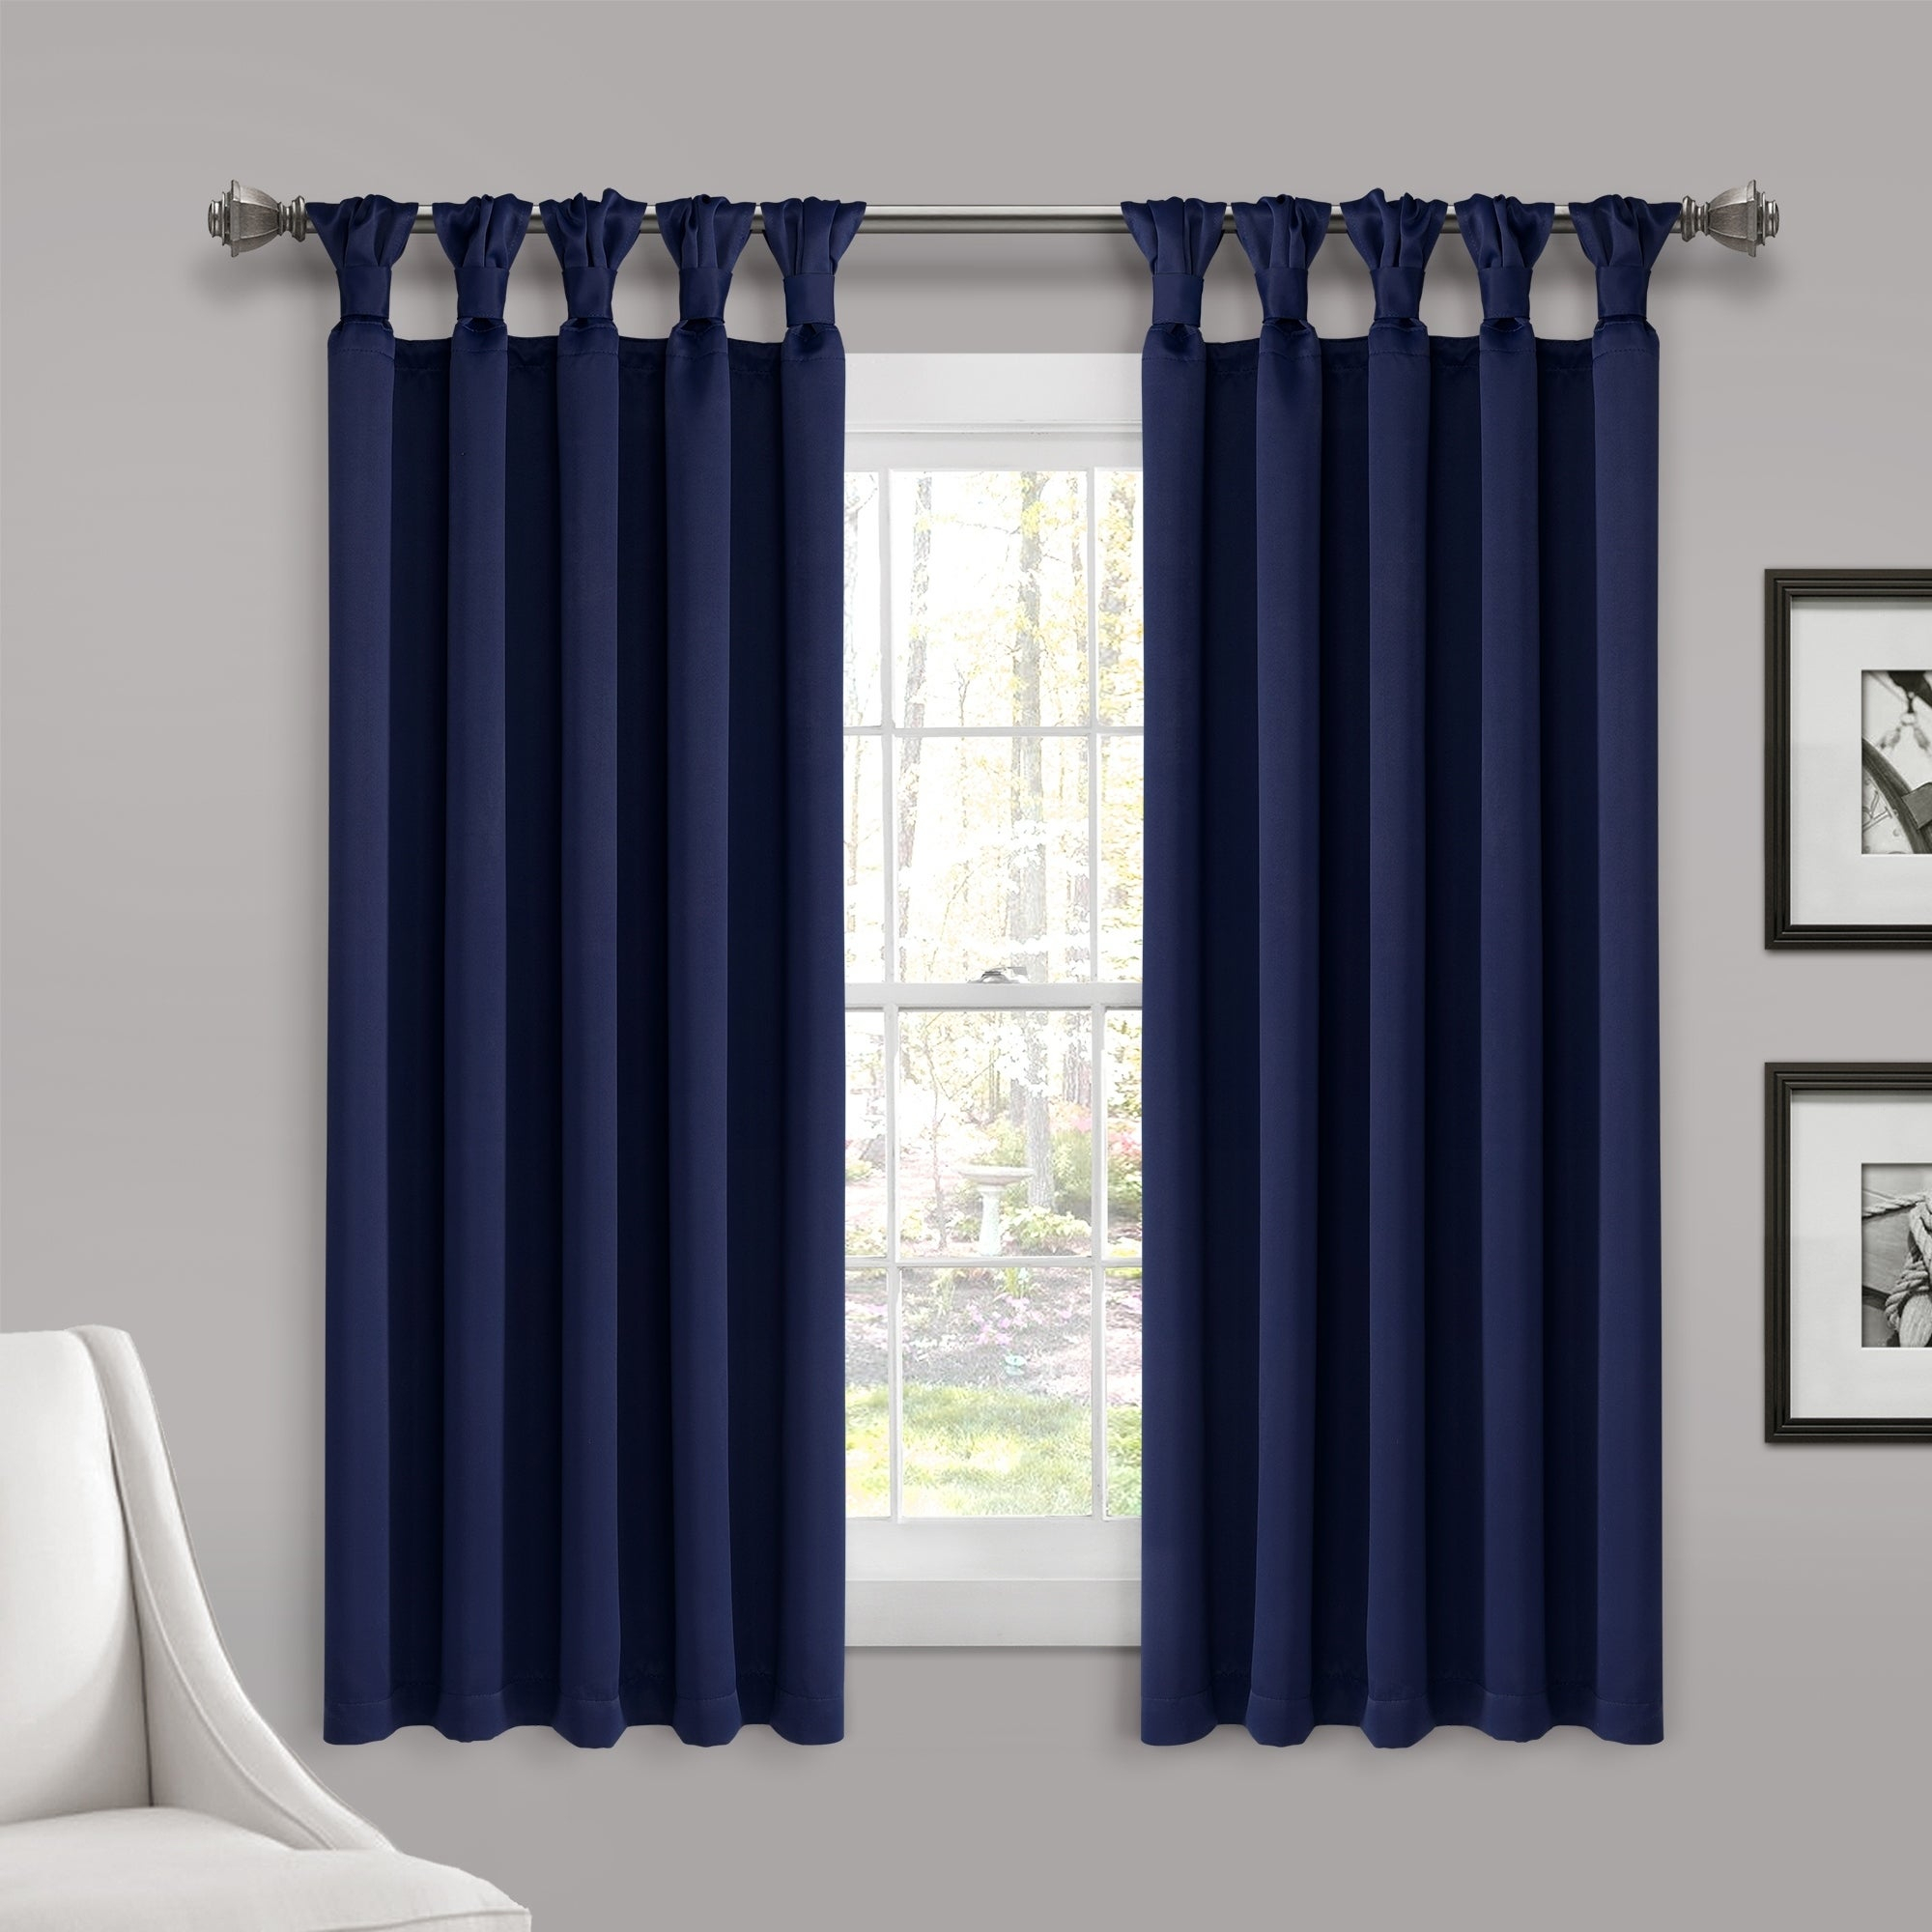 Lush Decor Insulated Knotted Tab Top Blackout Window Curtain Panel Pair For Knotted Tab Top Window Curtain Panel Pairs (View 4 of 20)